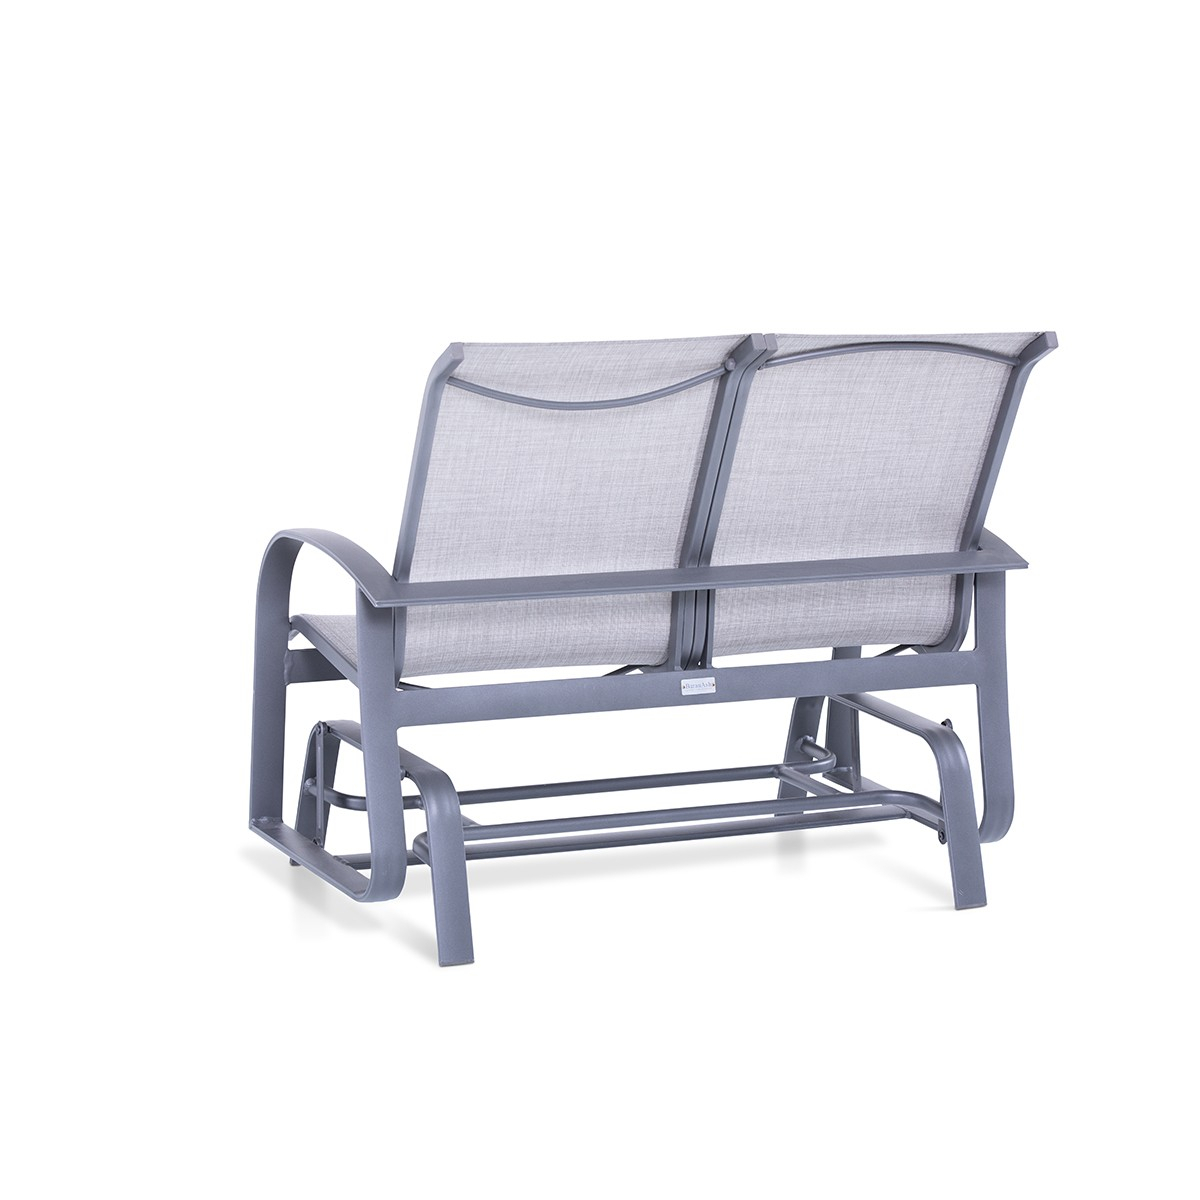 Wakefield Sling Double Glider – Patio Accessories – The With Sling Double Glider Benches (View 19 of 25)